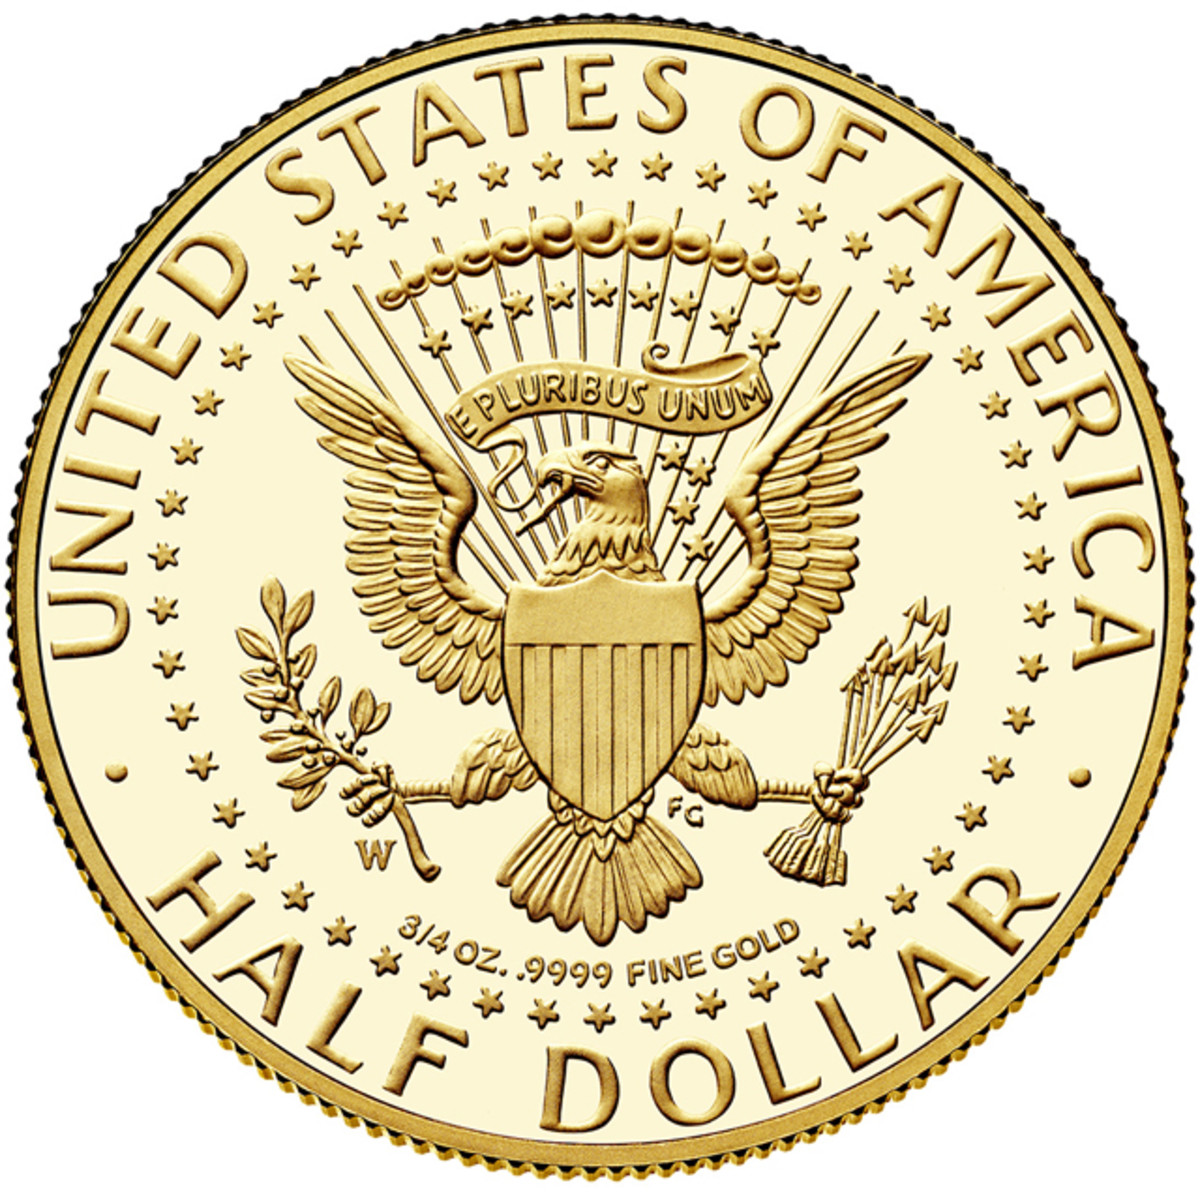 Reverse of the 2014-W Kennedy gold coin